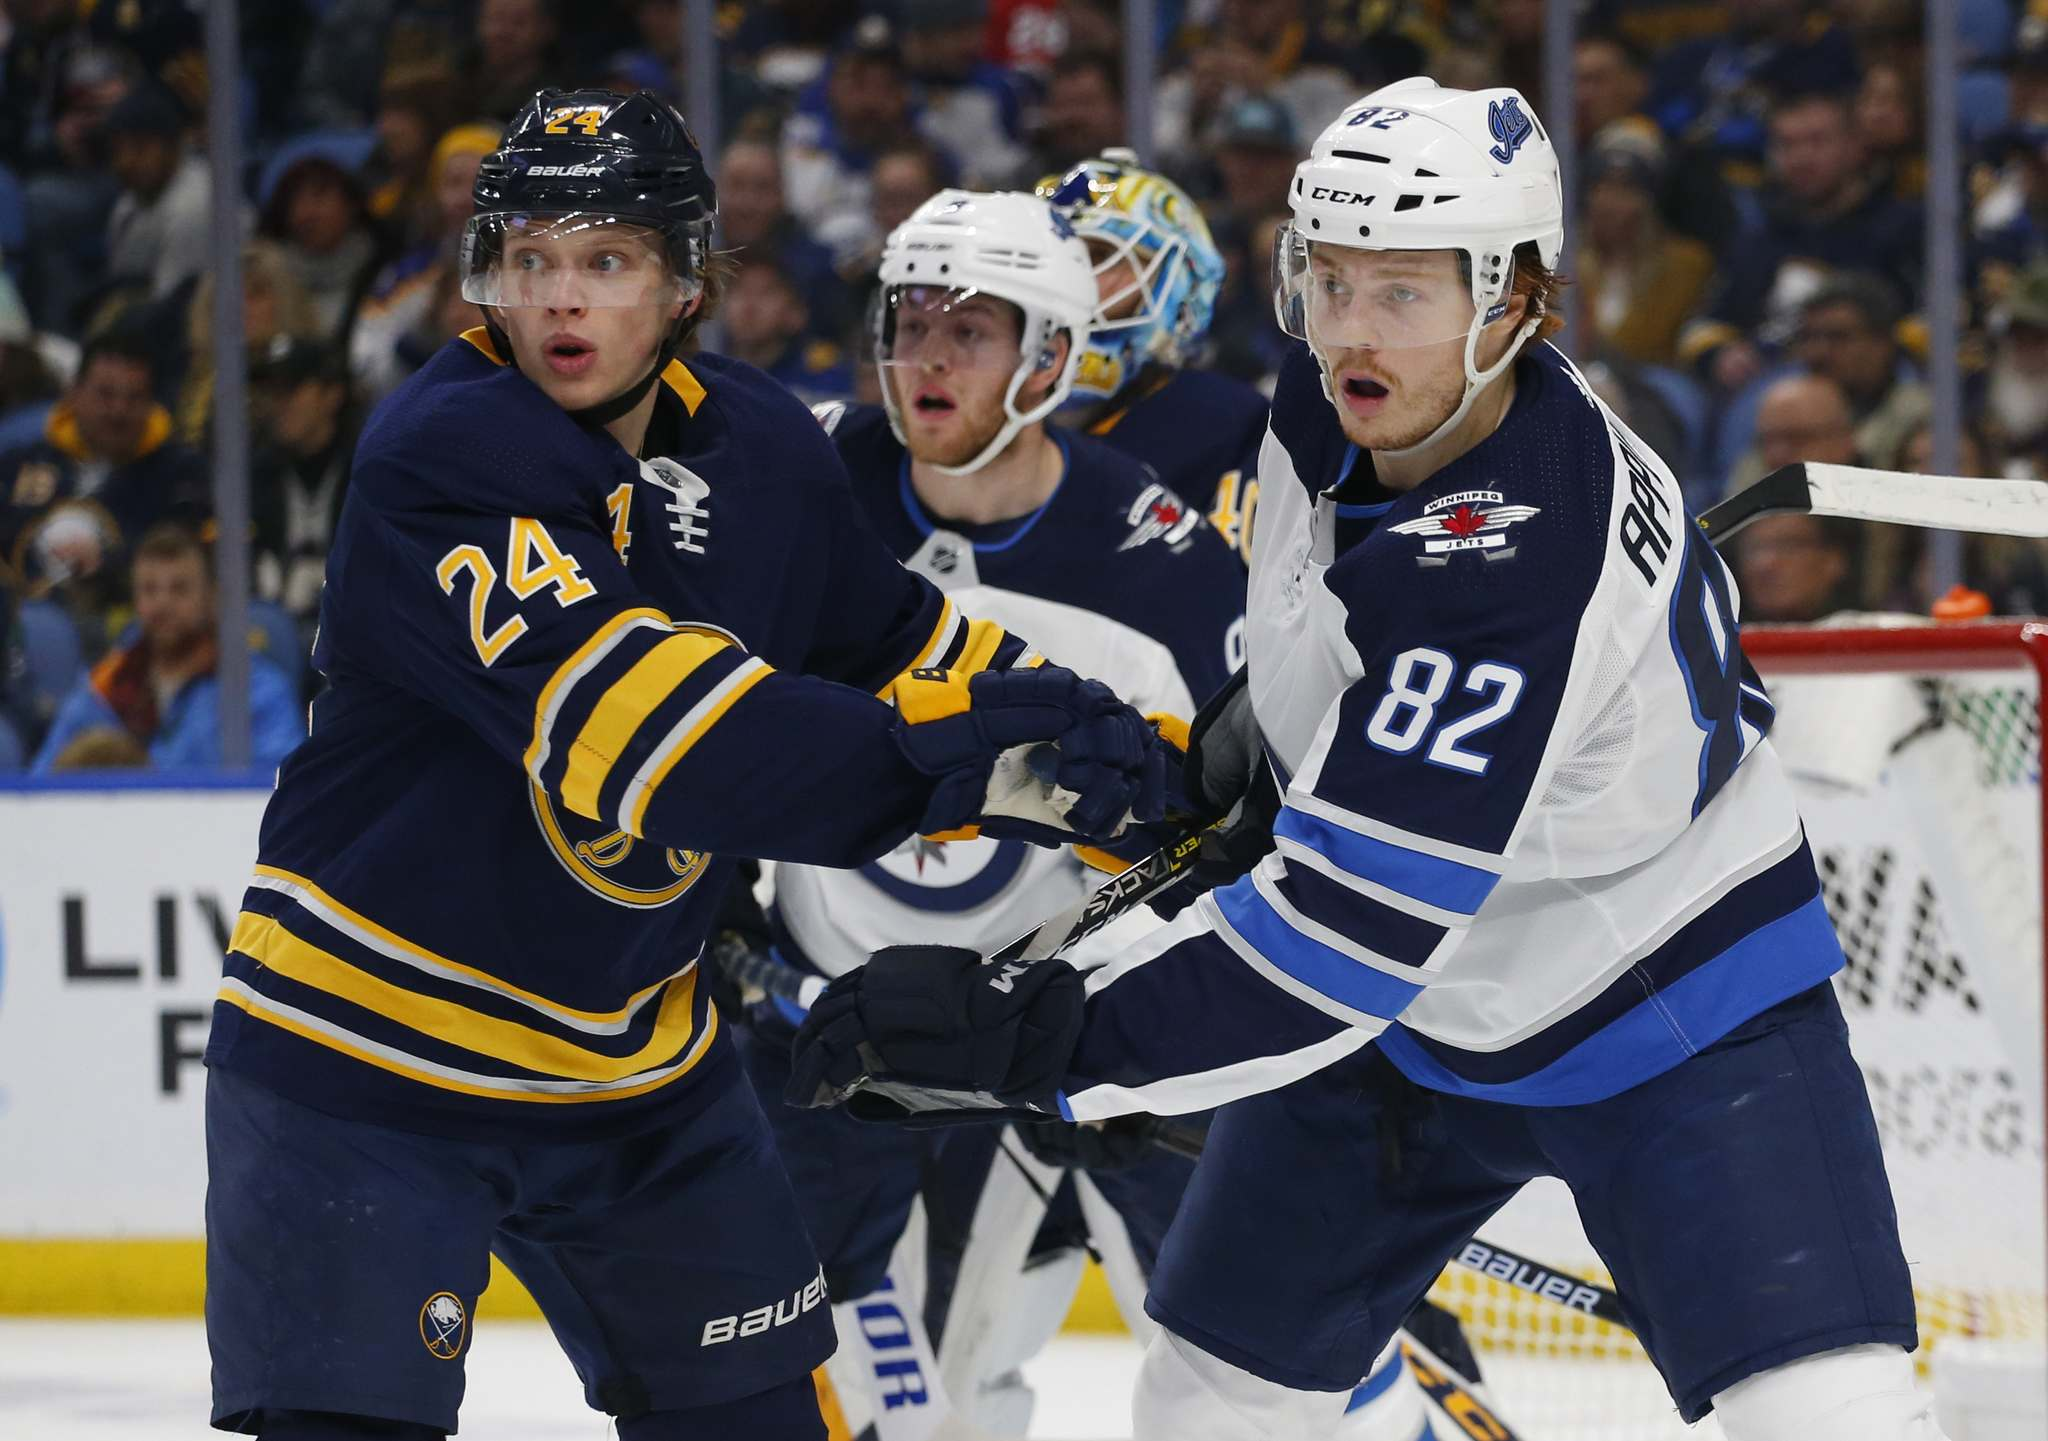 Buffalo Sabres defenseman Lawrence Pilut (24) and Winnipeg Jets forward Mason Appleton (82) battle for position during the second period of an NHL hockey game, Sunday in Buffalo N.Y.